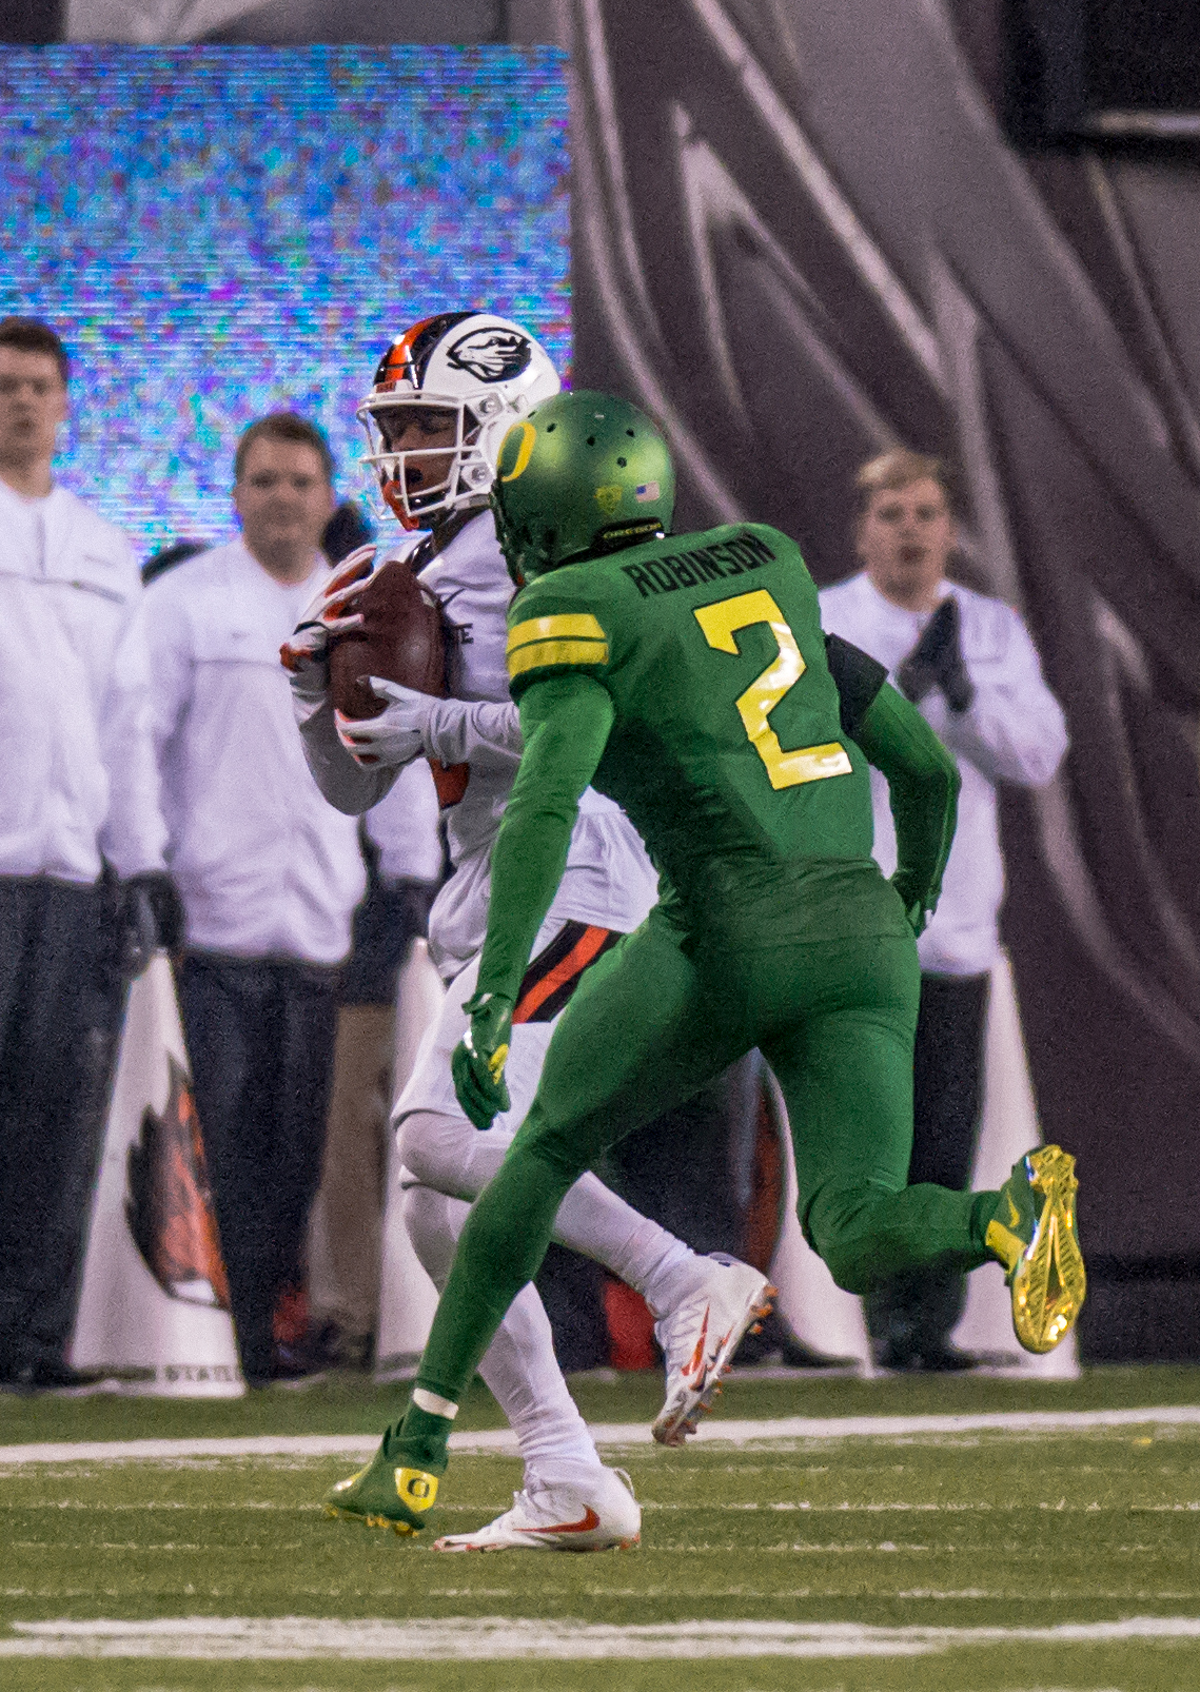 Oregon State wide receiver Trevon Bradford (#8) catches a long pass. The Oregon Ducks defeated the Oregon State Beavers 69 to 10 in the 121st Civil War game at Autzen Stadium in Eugene, Ore. on Saturday November 25, 2017. Photo by Ben Lonergan, Oregon News Lab